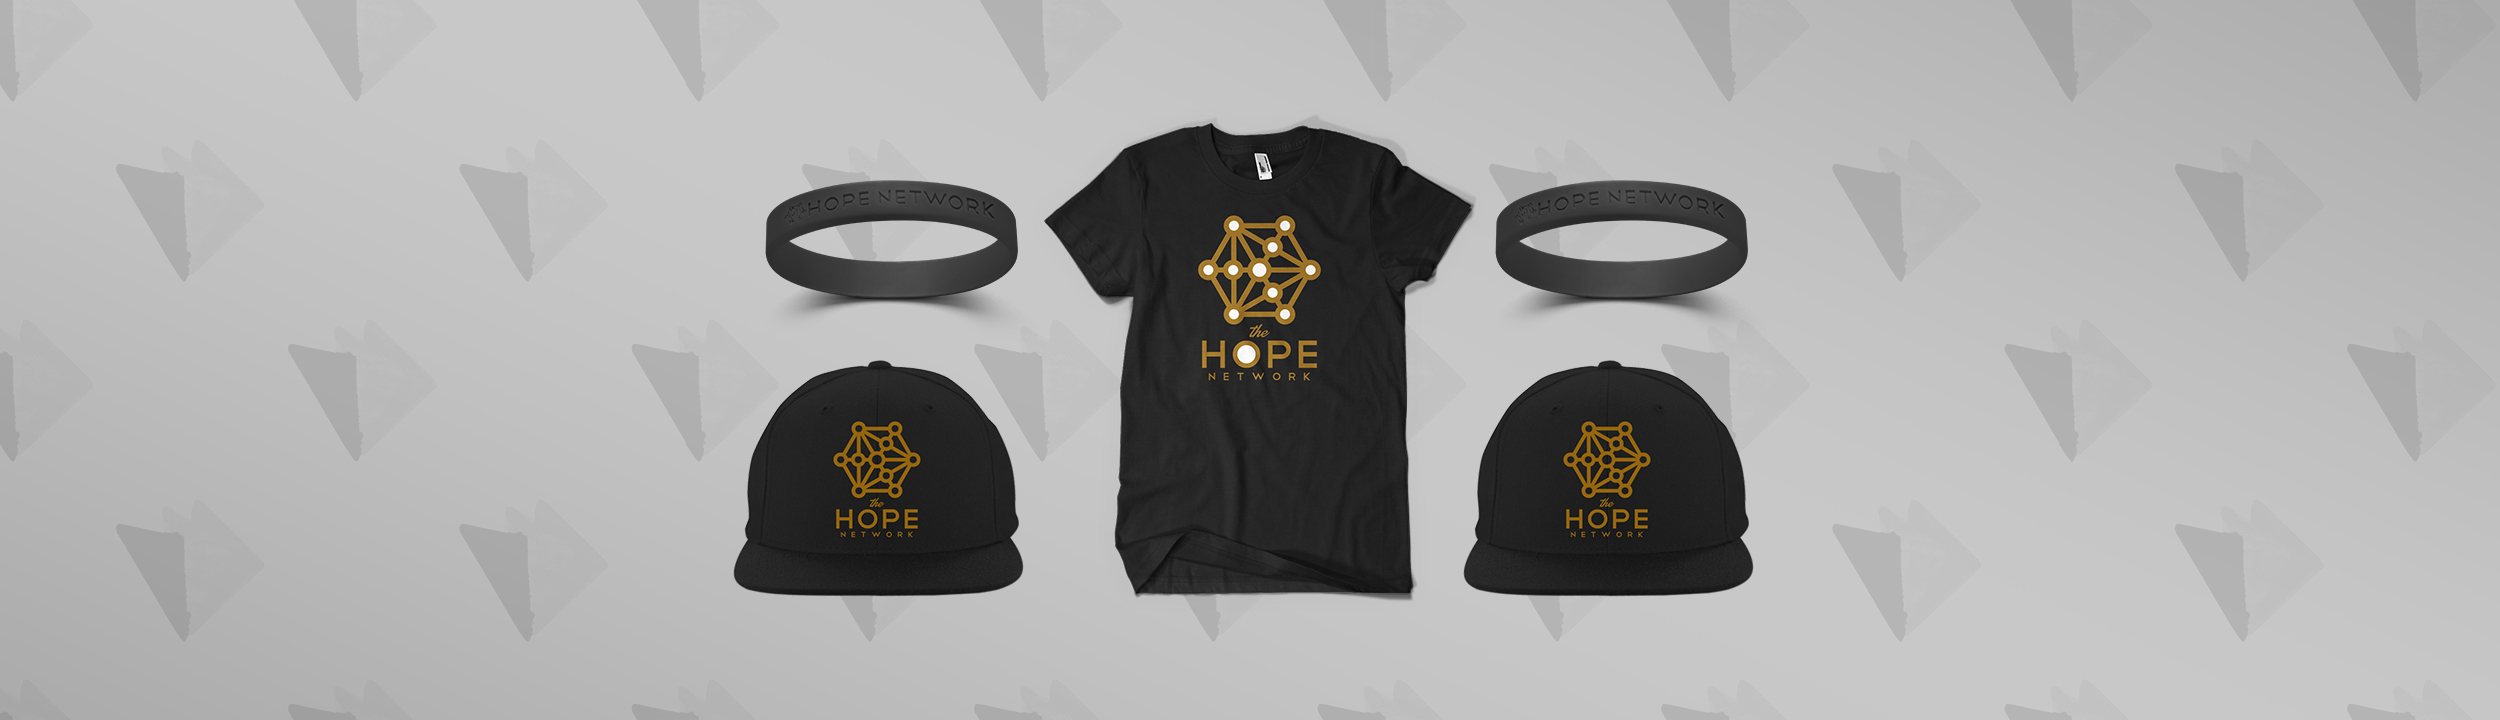 The Hope Network   Merchandise    Shop Now